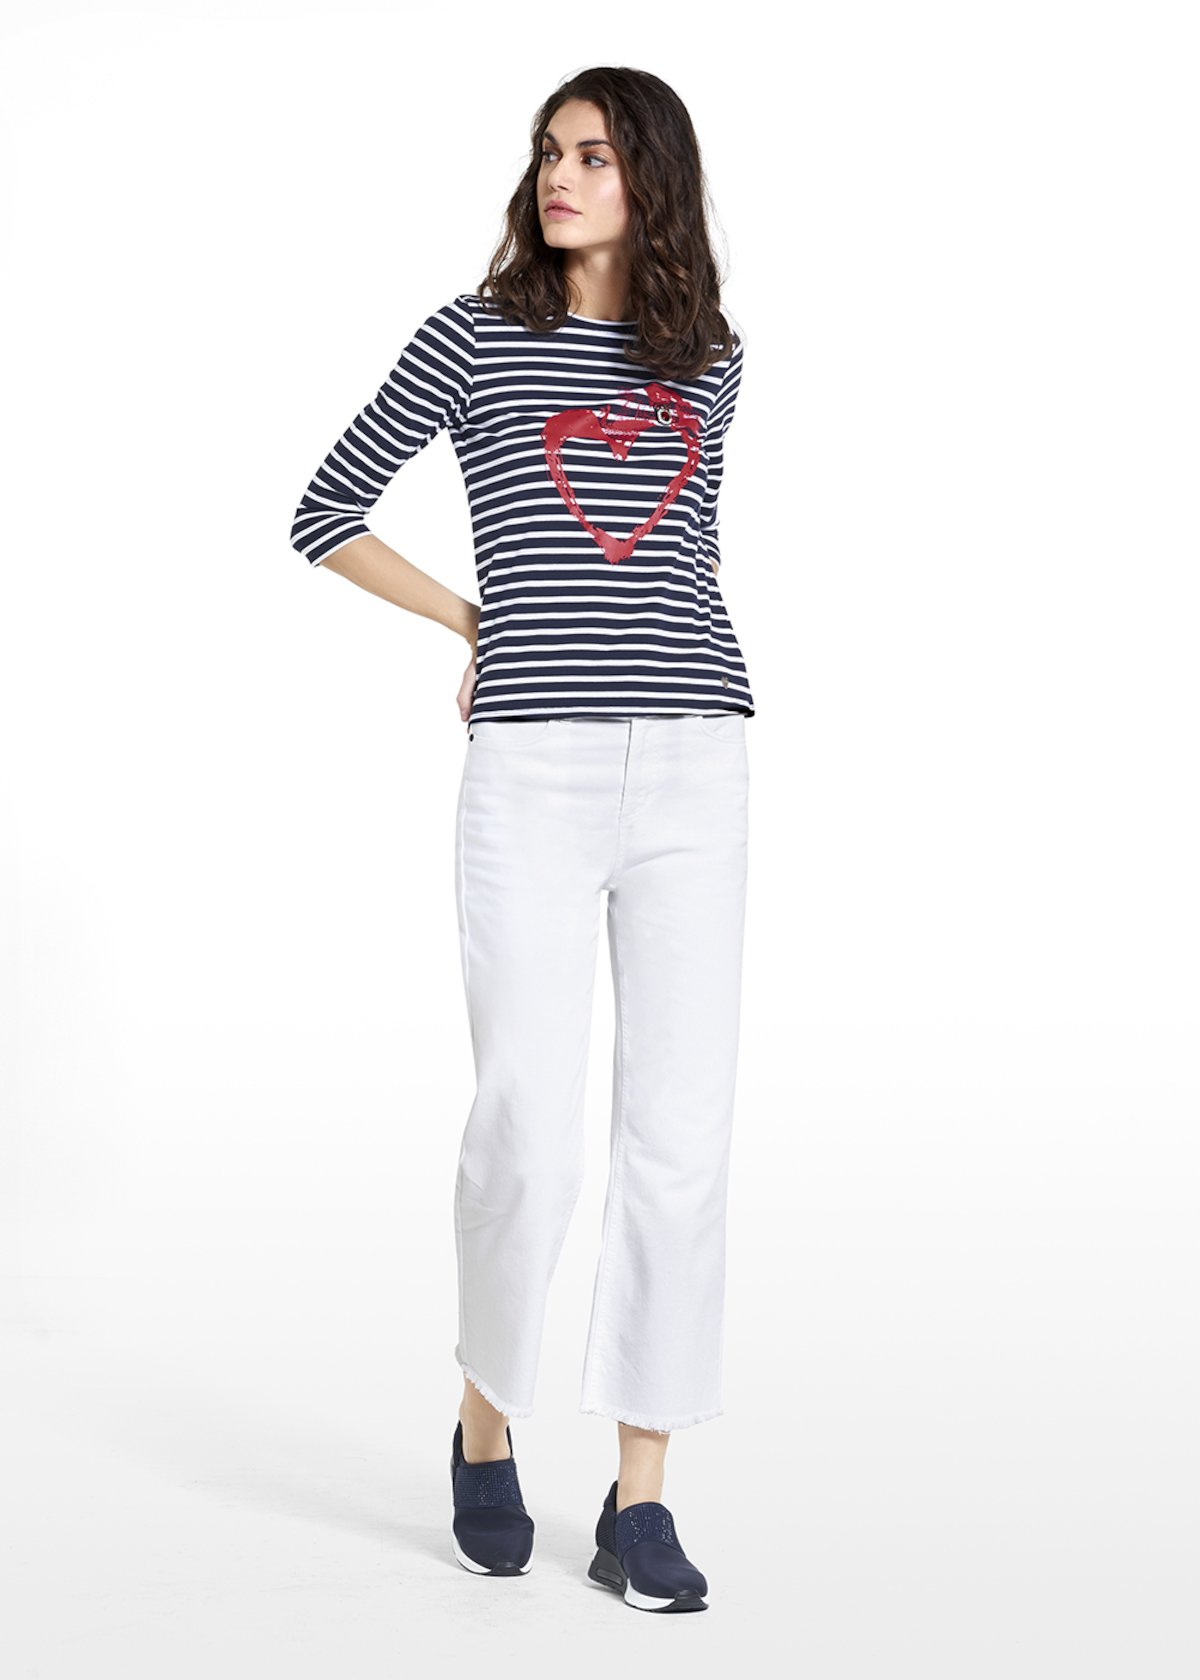 Sweater Sary in jersey stripes style with heart - Blue / White Stripes - Woman